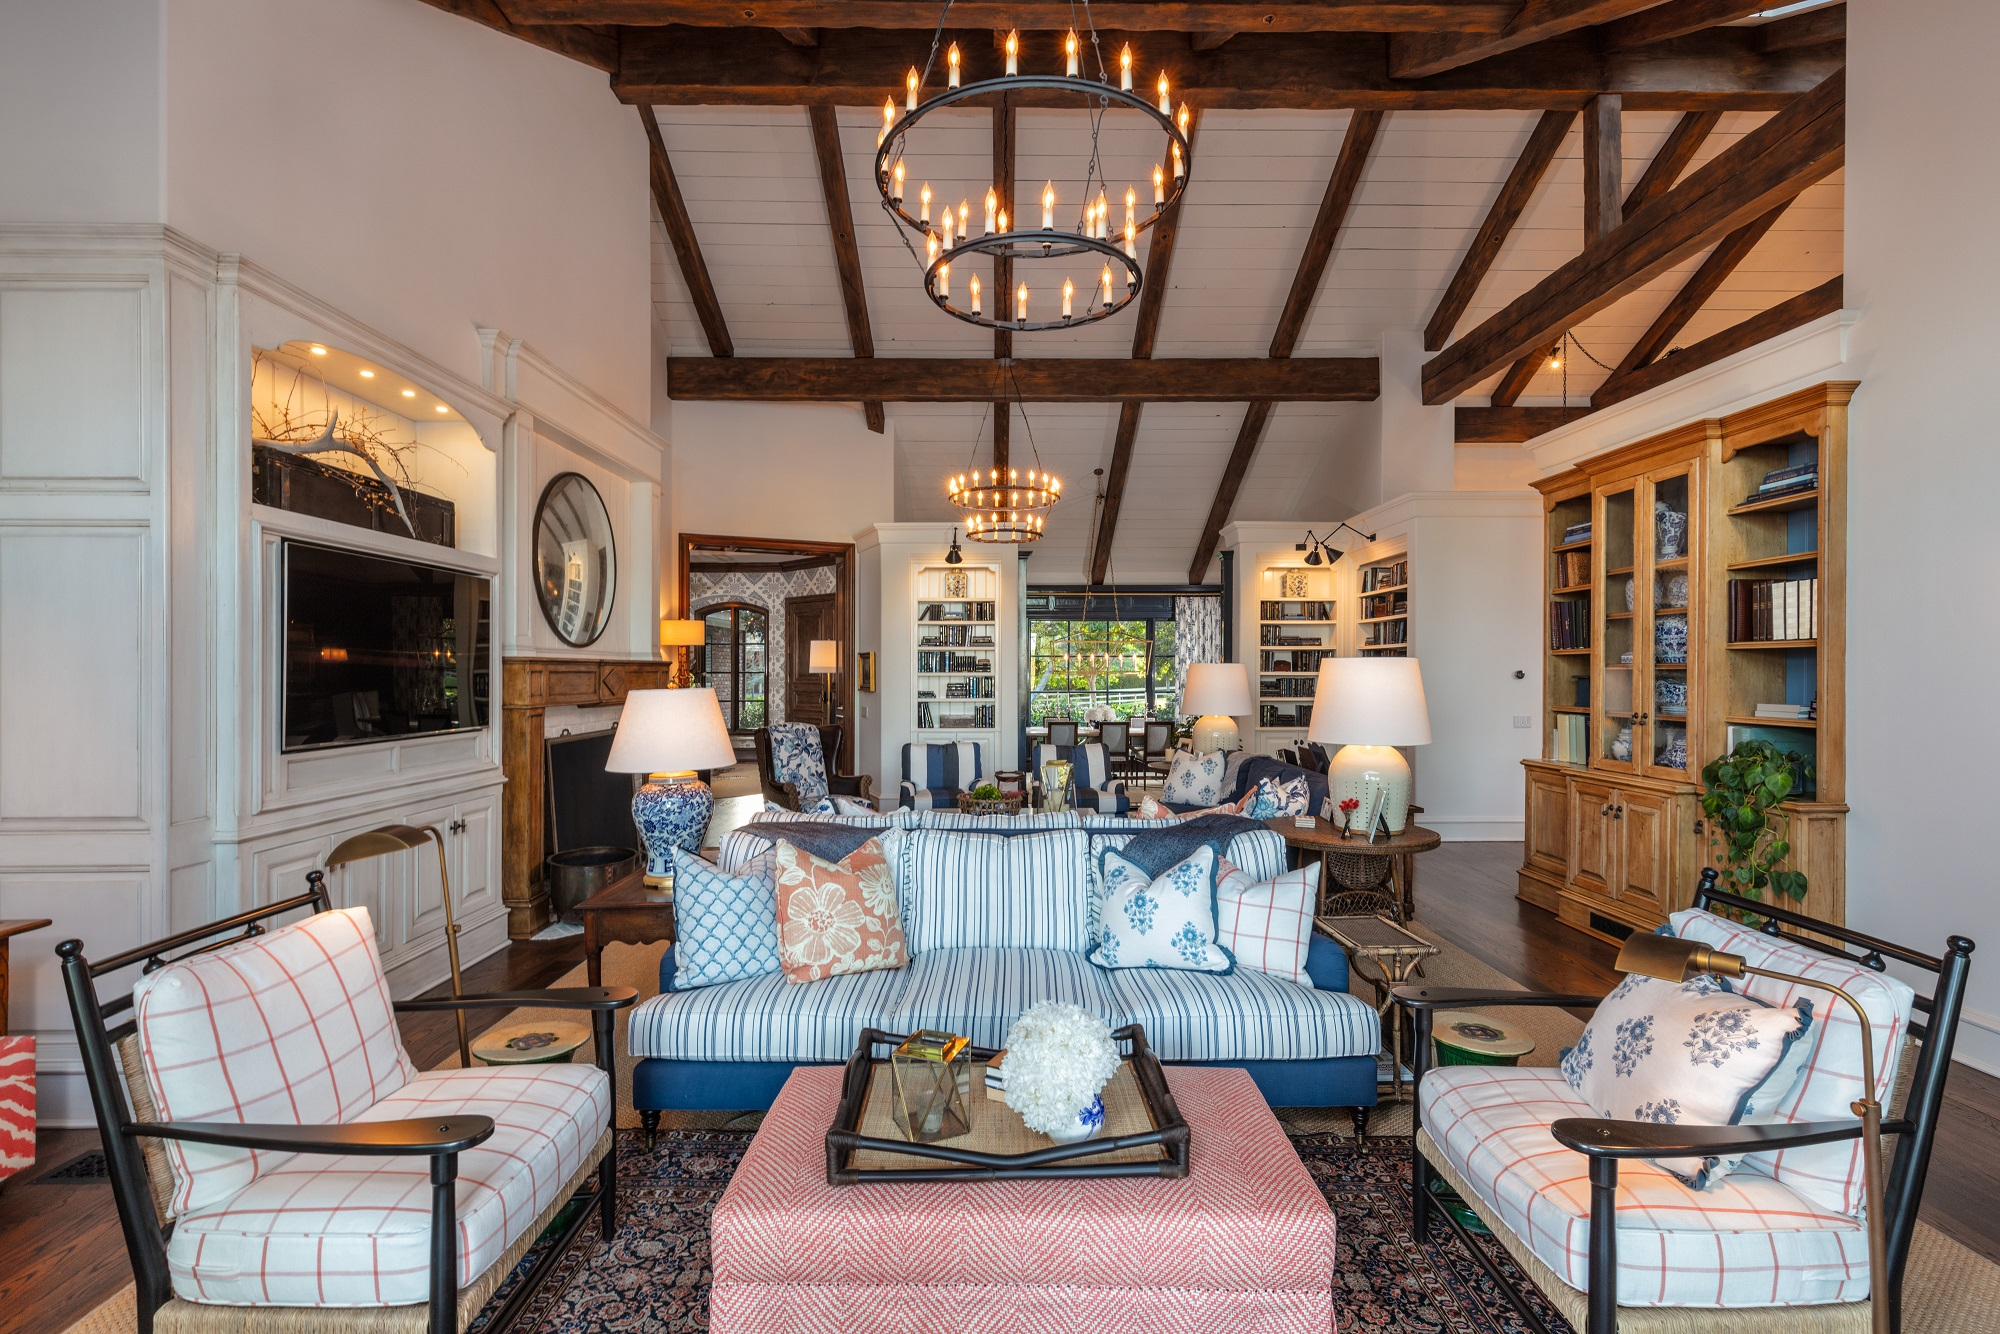 Sold 2019 Represented Buyer & Seller -  Rancho Santa Fe, CA 92067